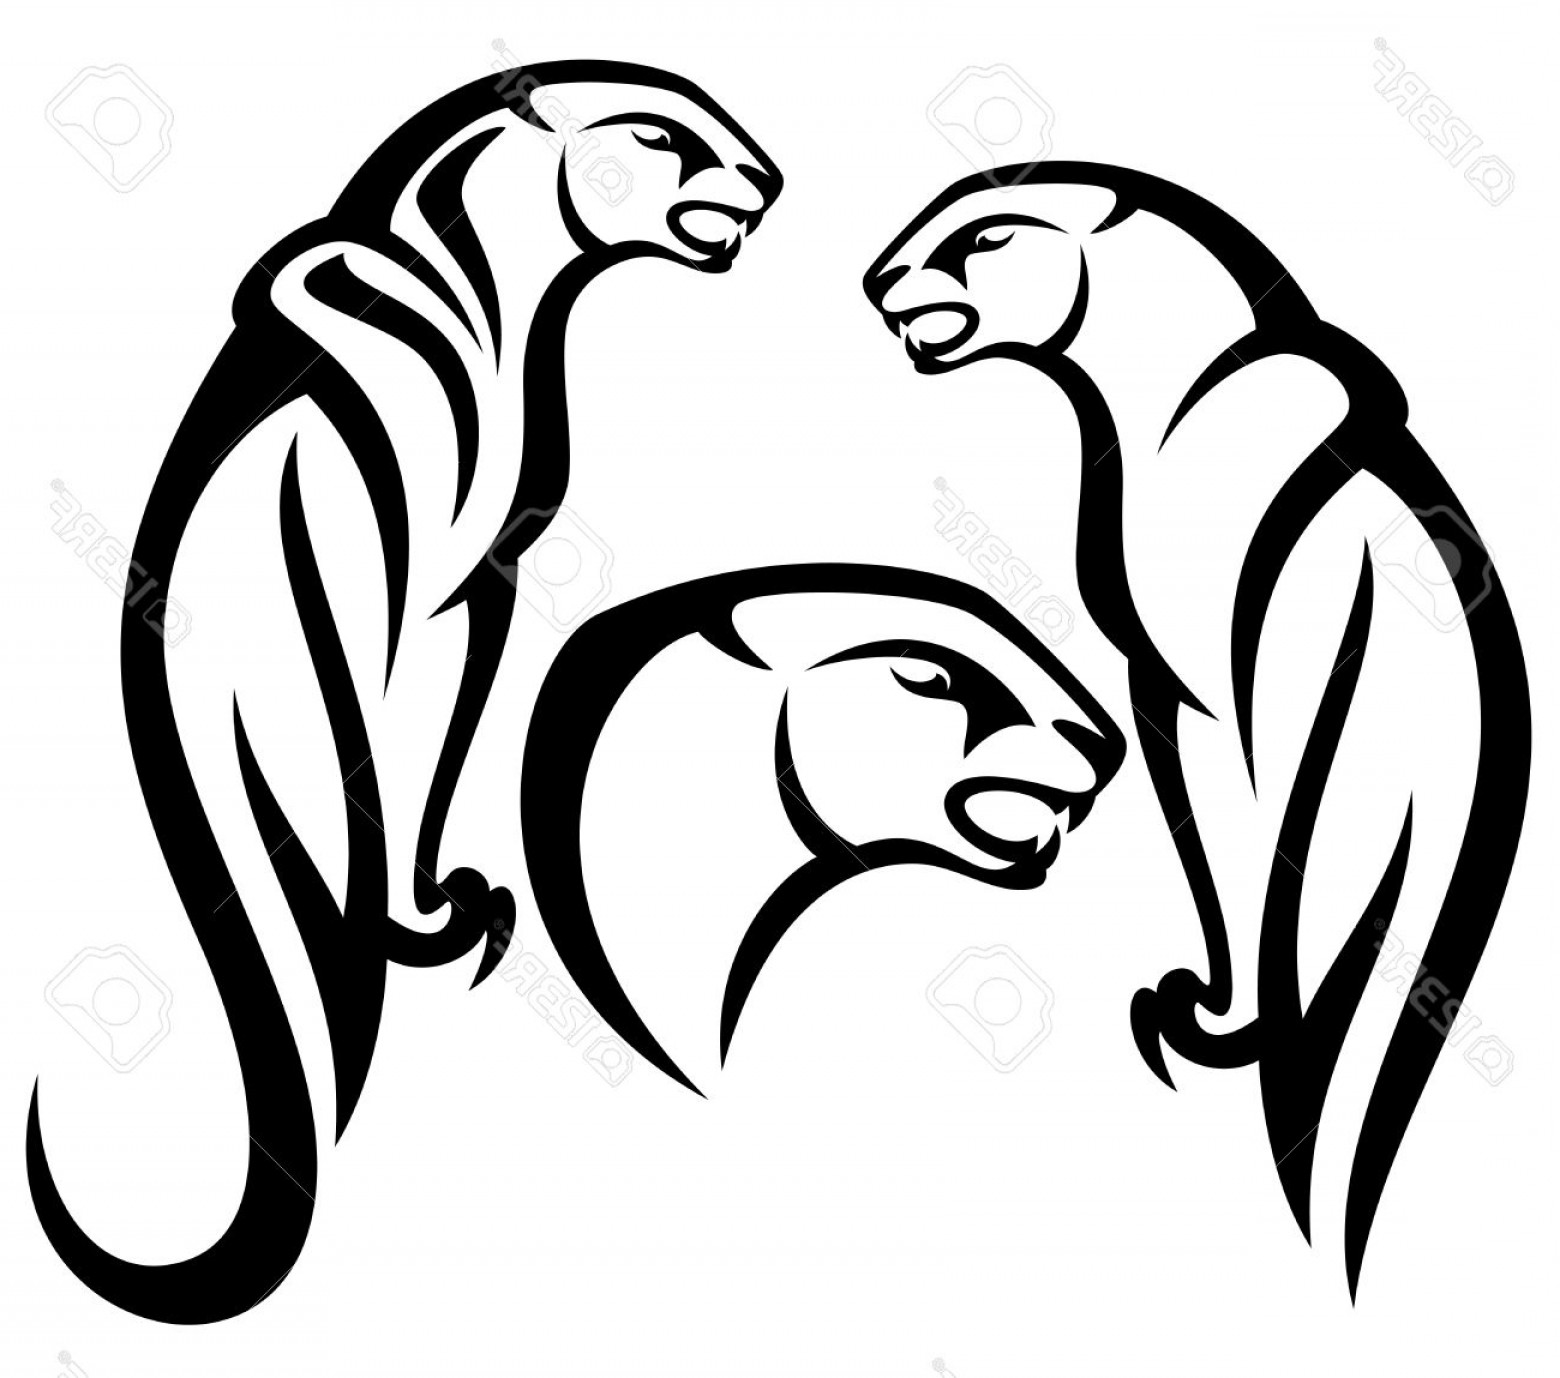 1560x1378 Photopanther Tribal Vector Design Black And White Outline